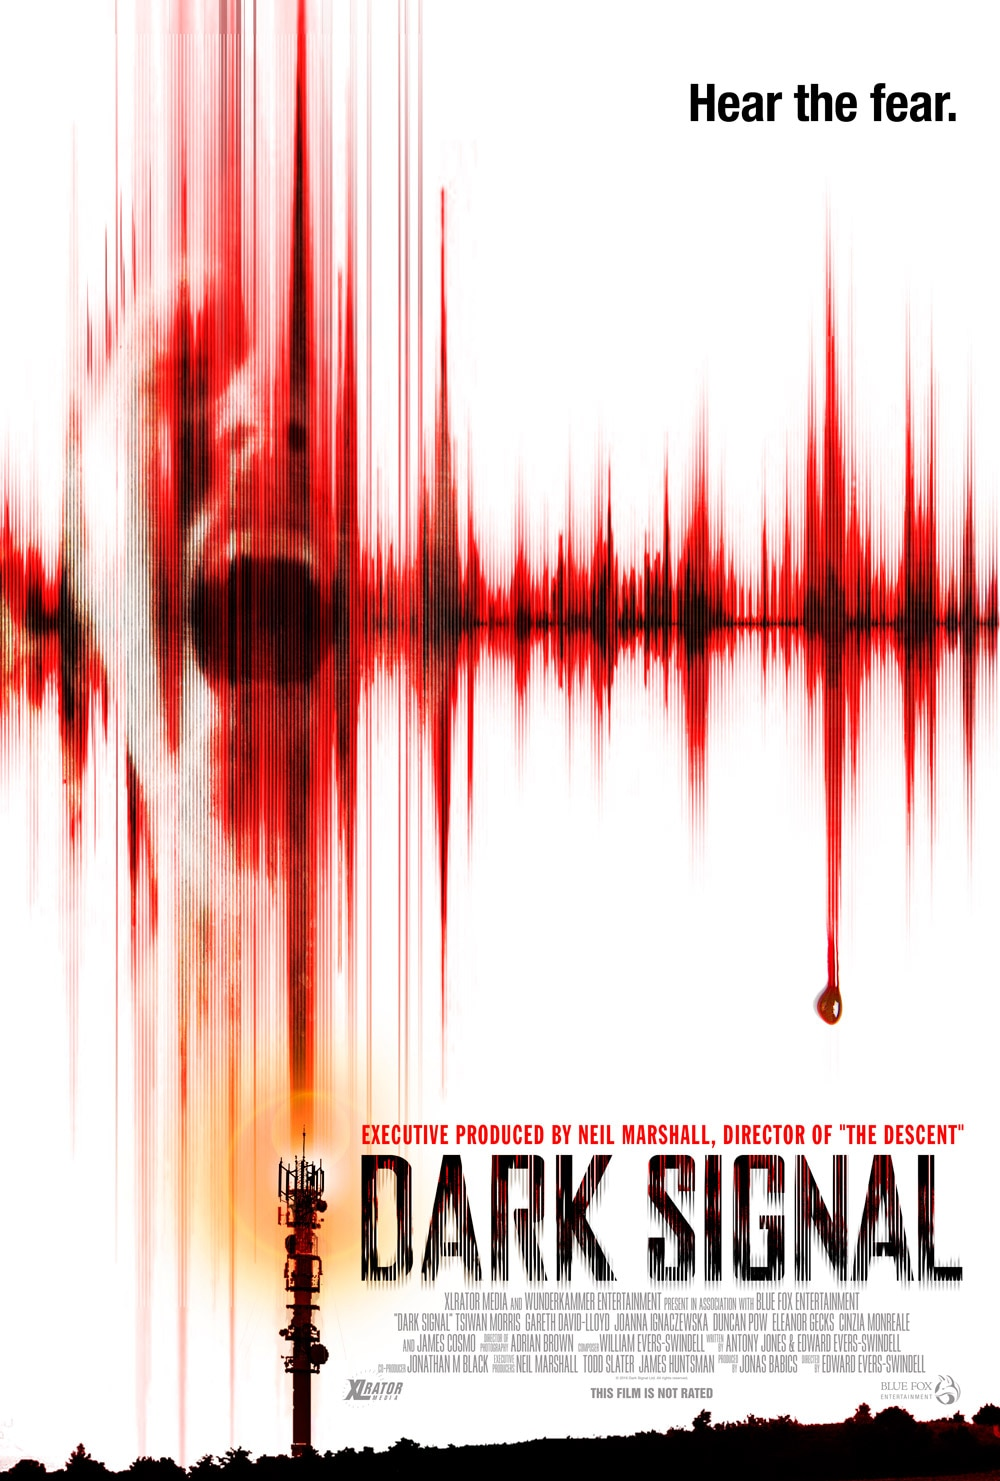 Dark signal - Exclusive: Make Sure to Look Behind You After Watching This Dark Signal Clip